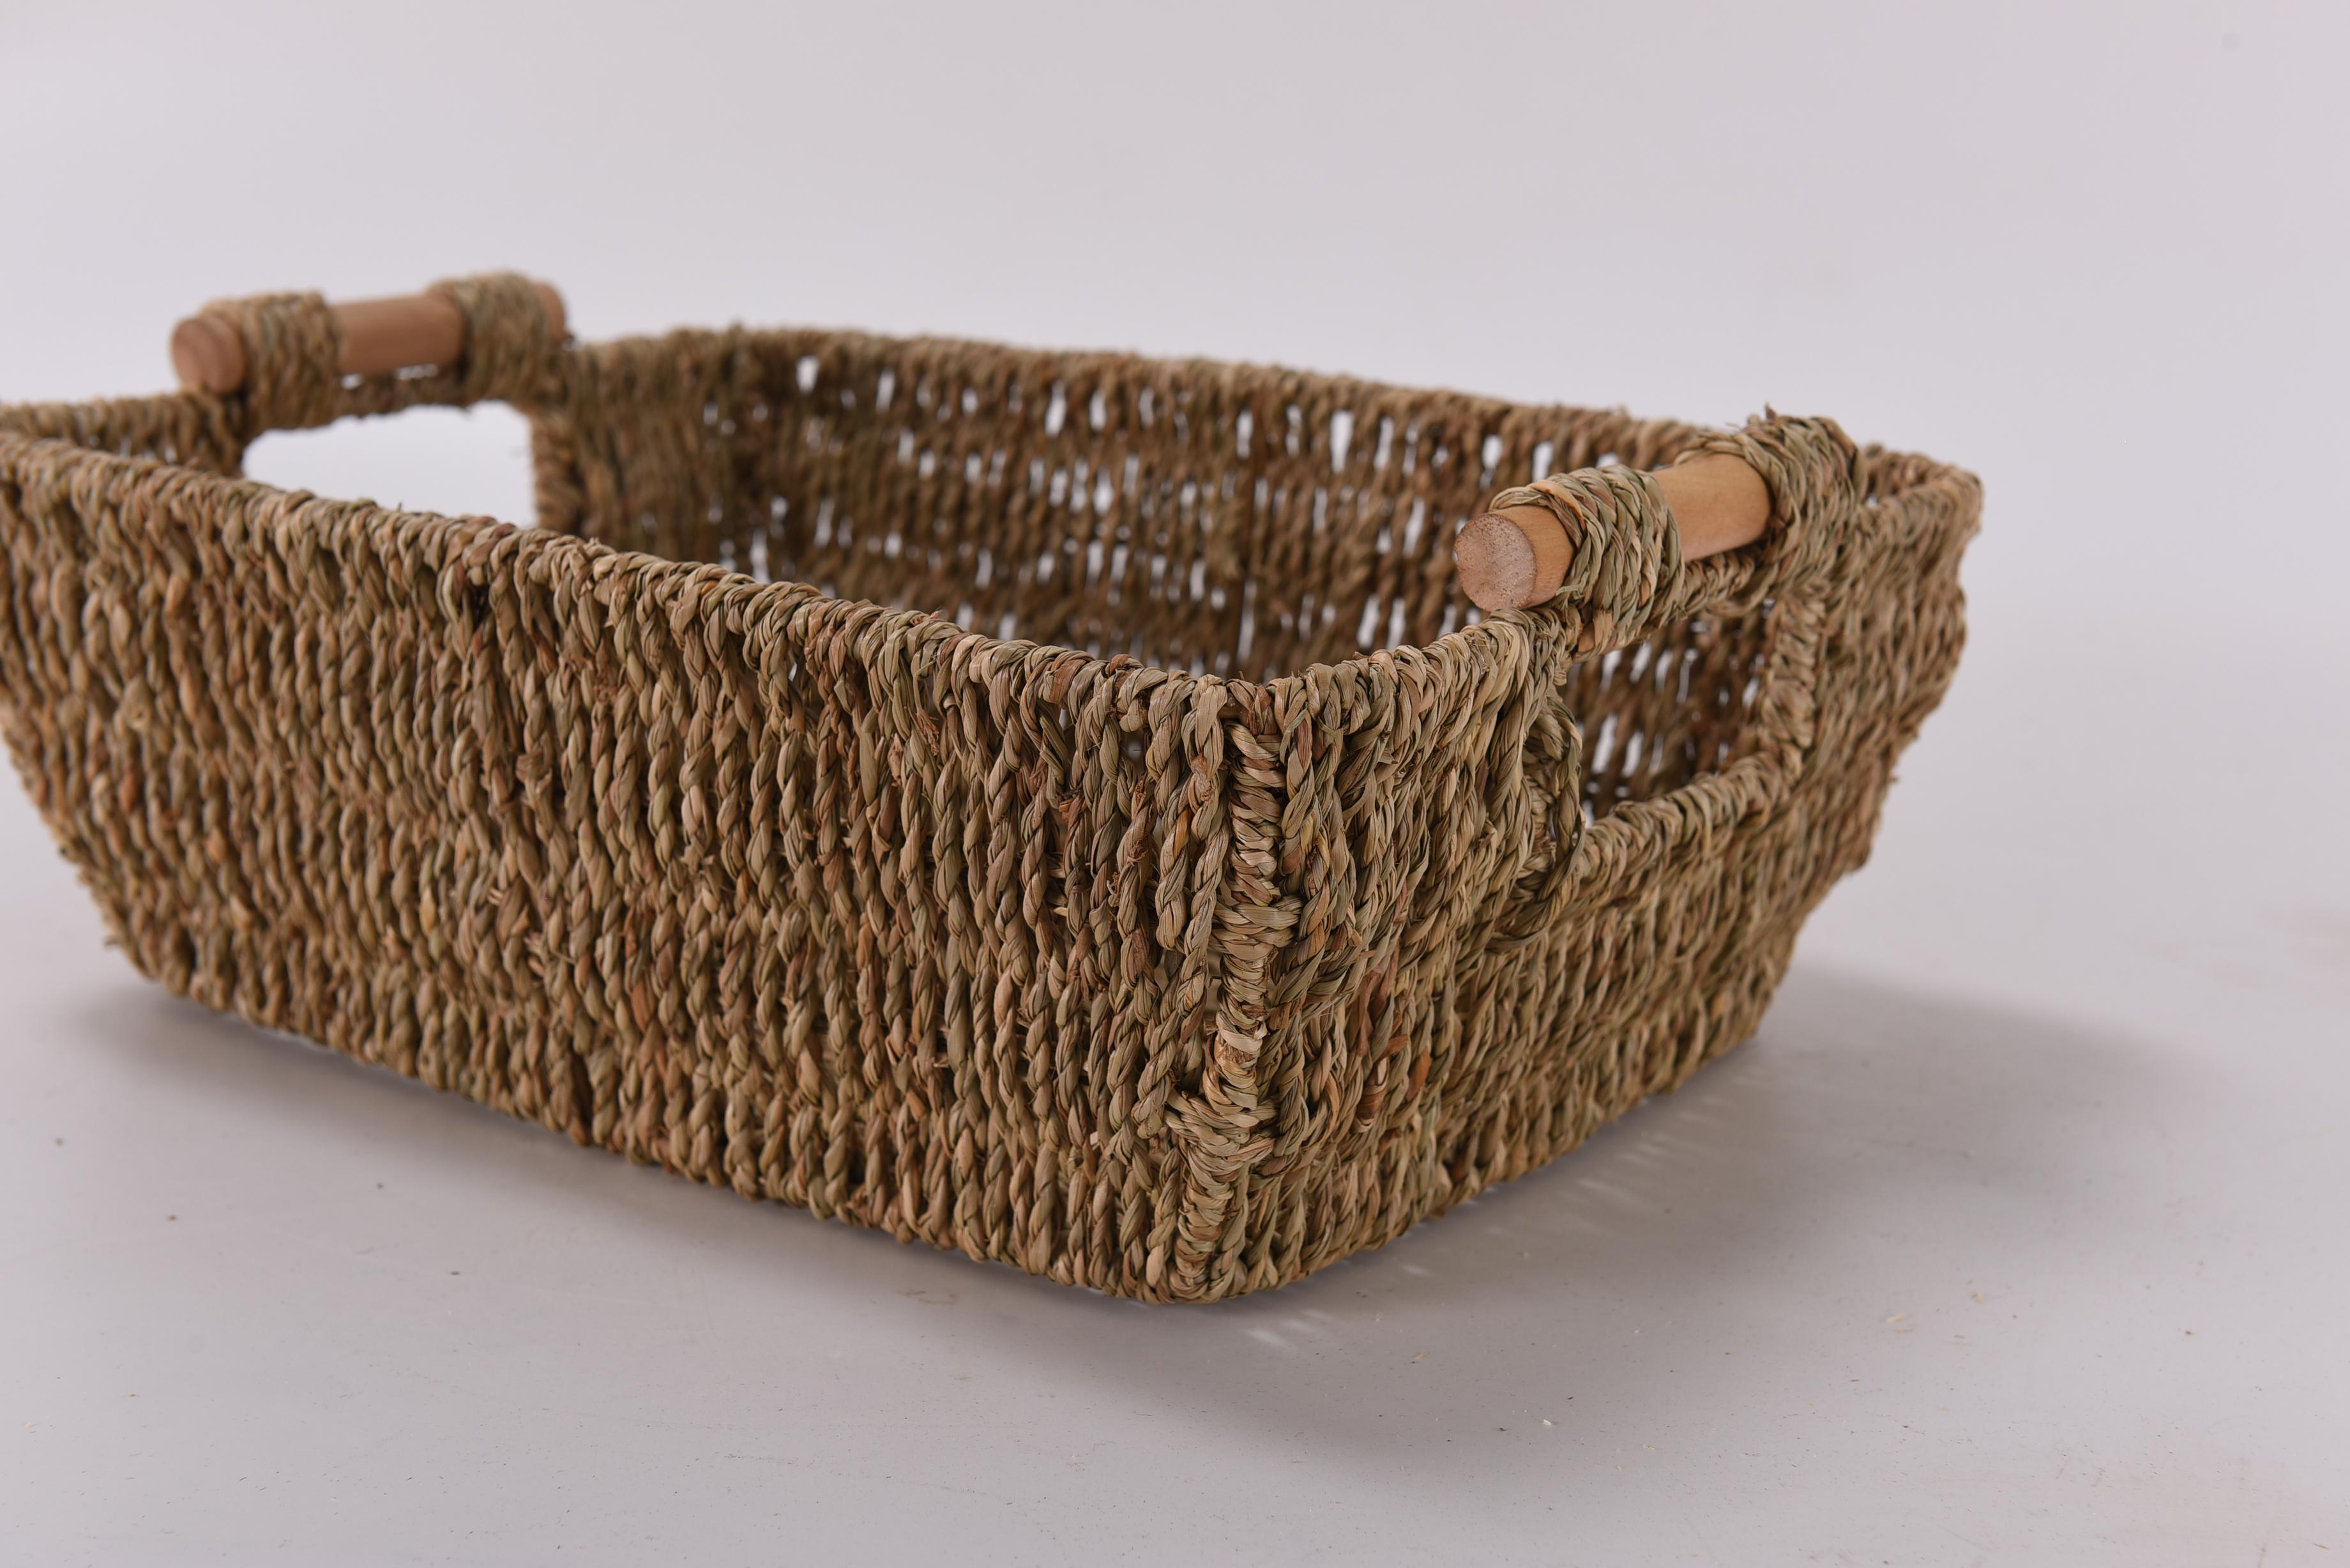 Fuara 2pcs Hand-Woven Large Storage Baskets with Wooden Handles Seagrass Wicker Baskets for Organizing